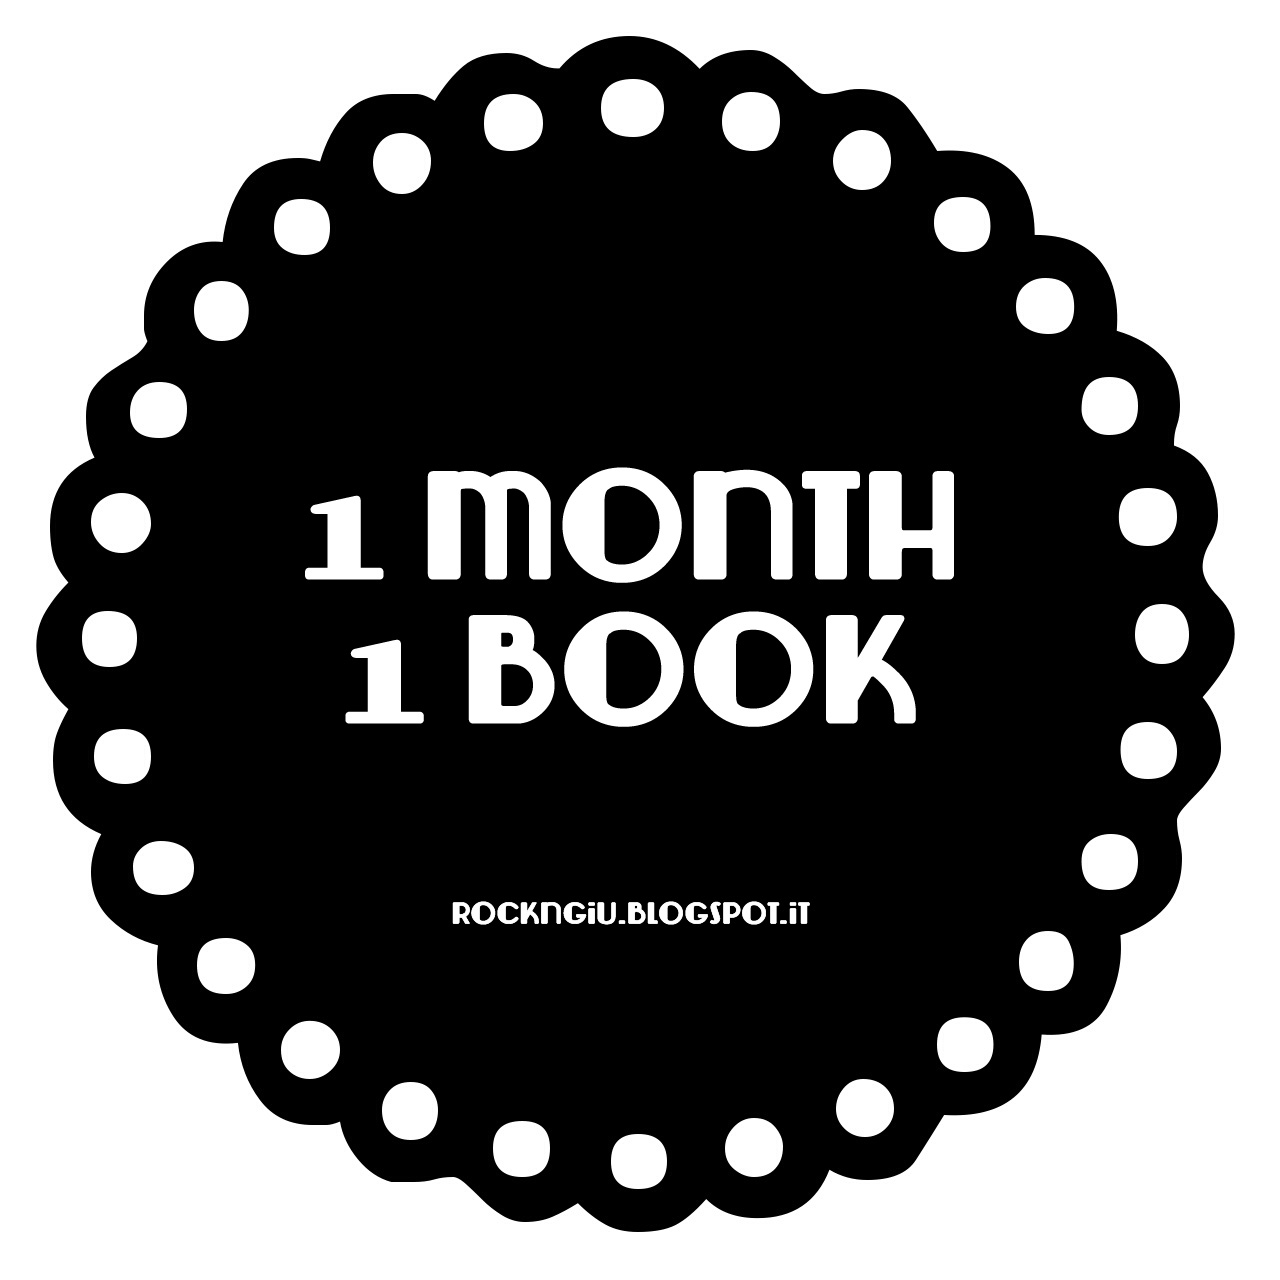 1 Month 1 Book